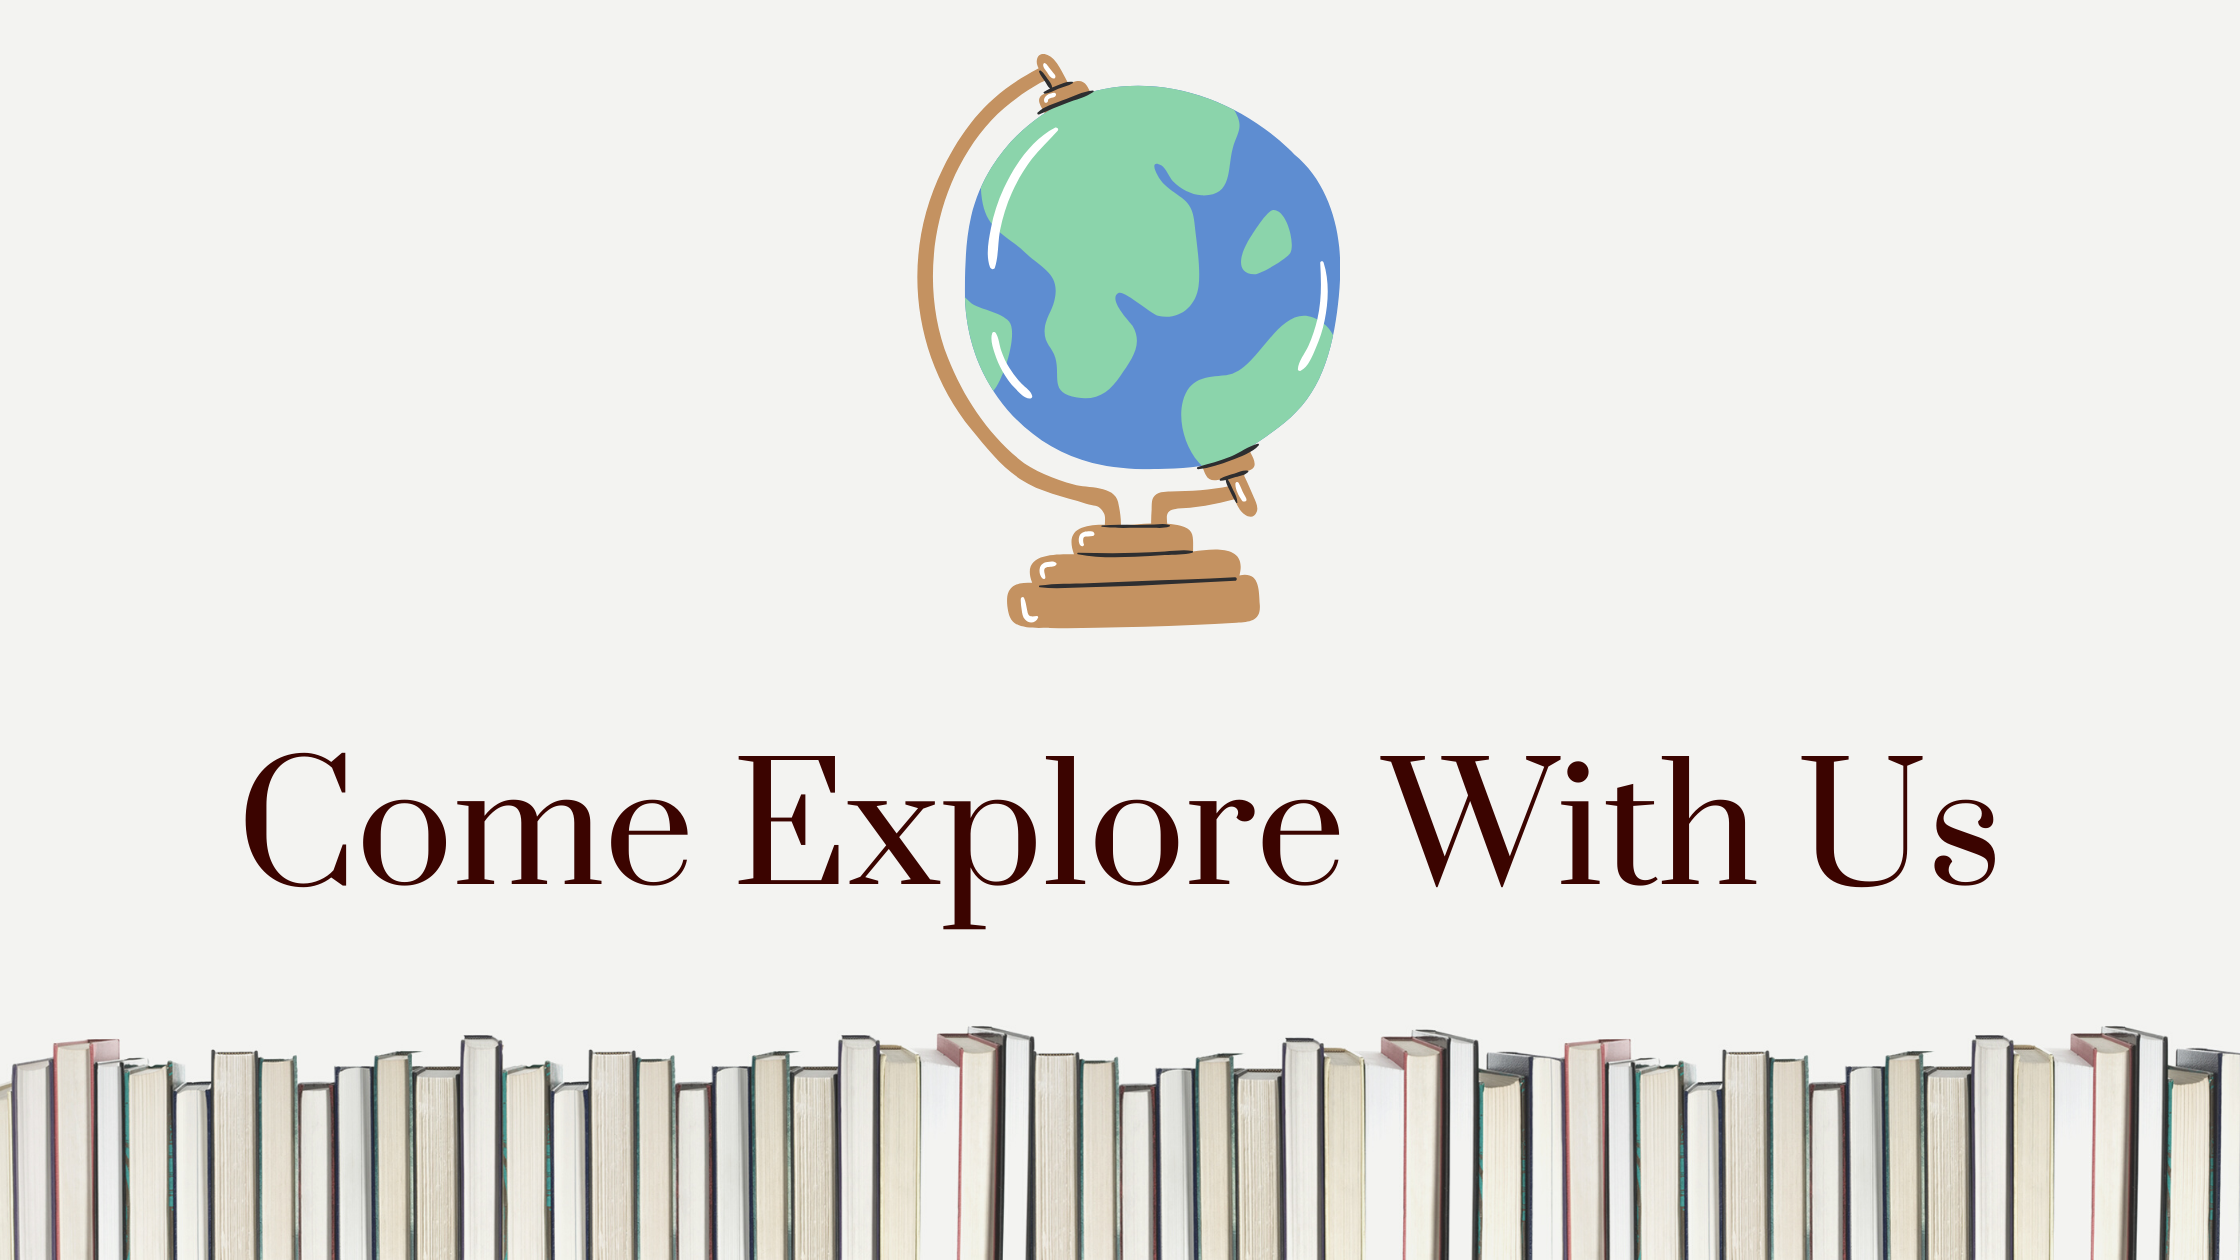 Come Explore with us, with books, and a globe